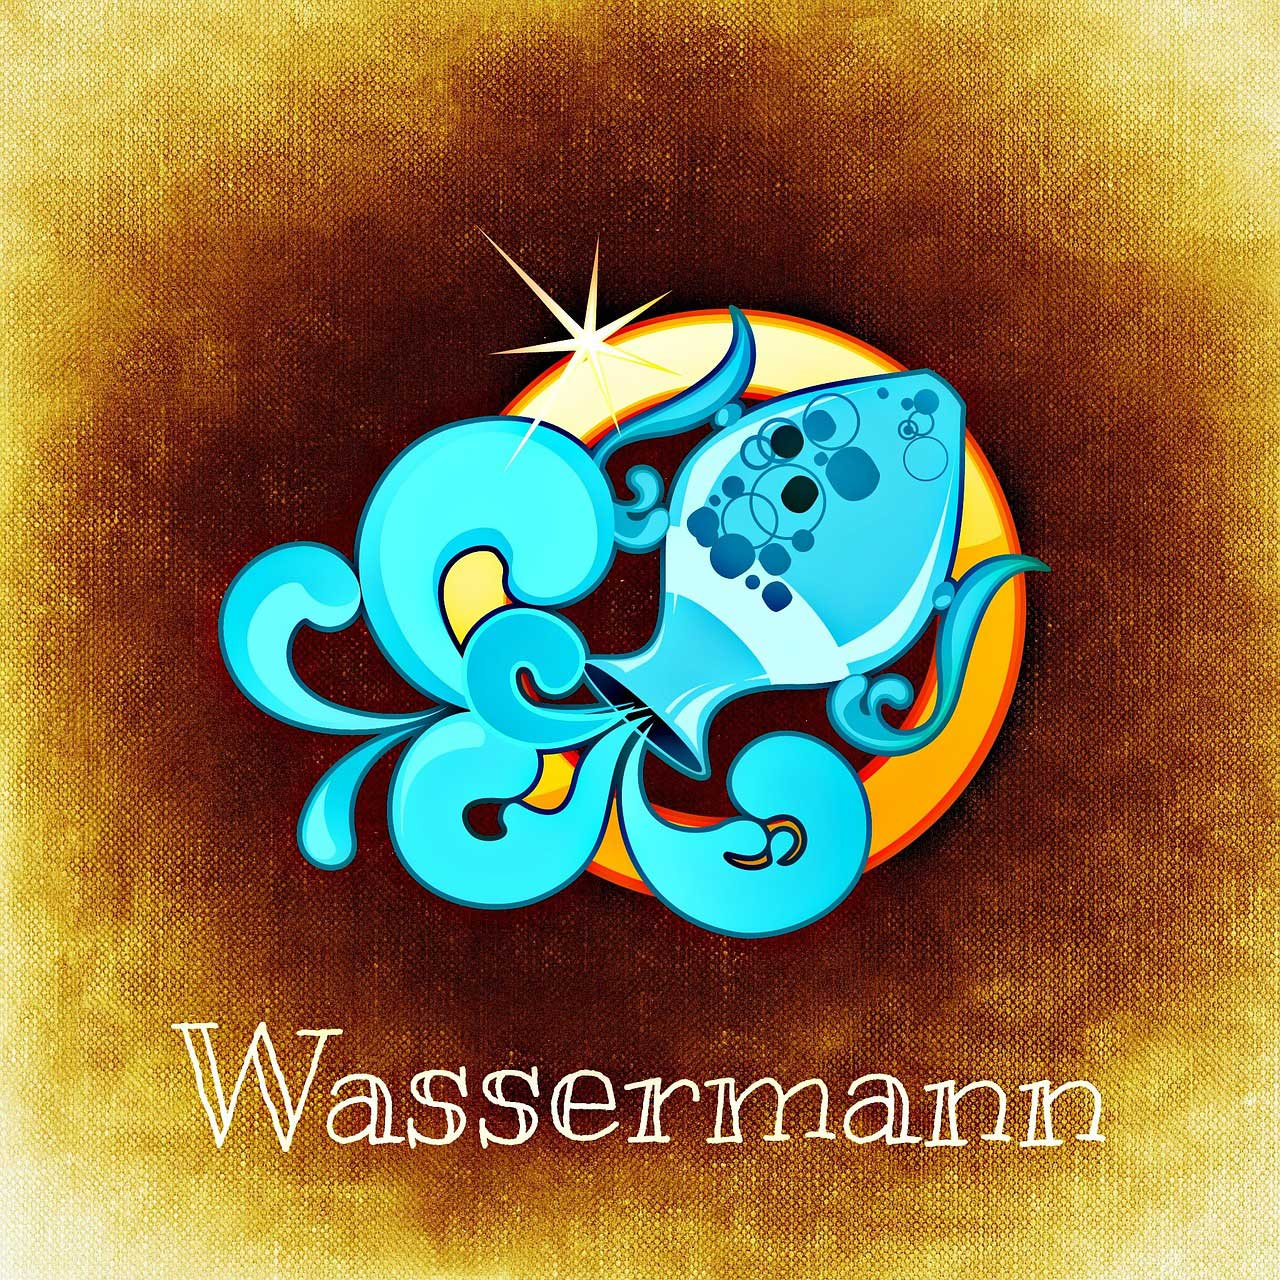 wassermann mann single 2014 Görlitz